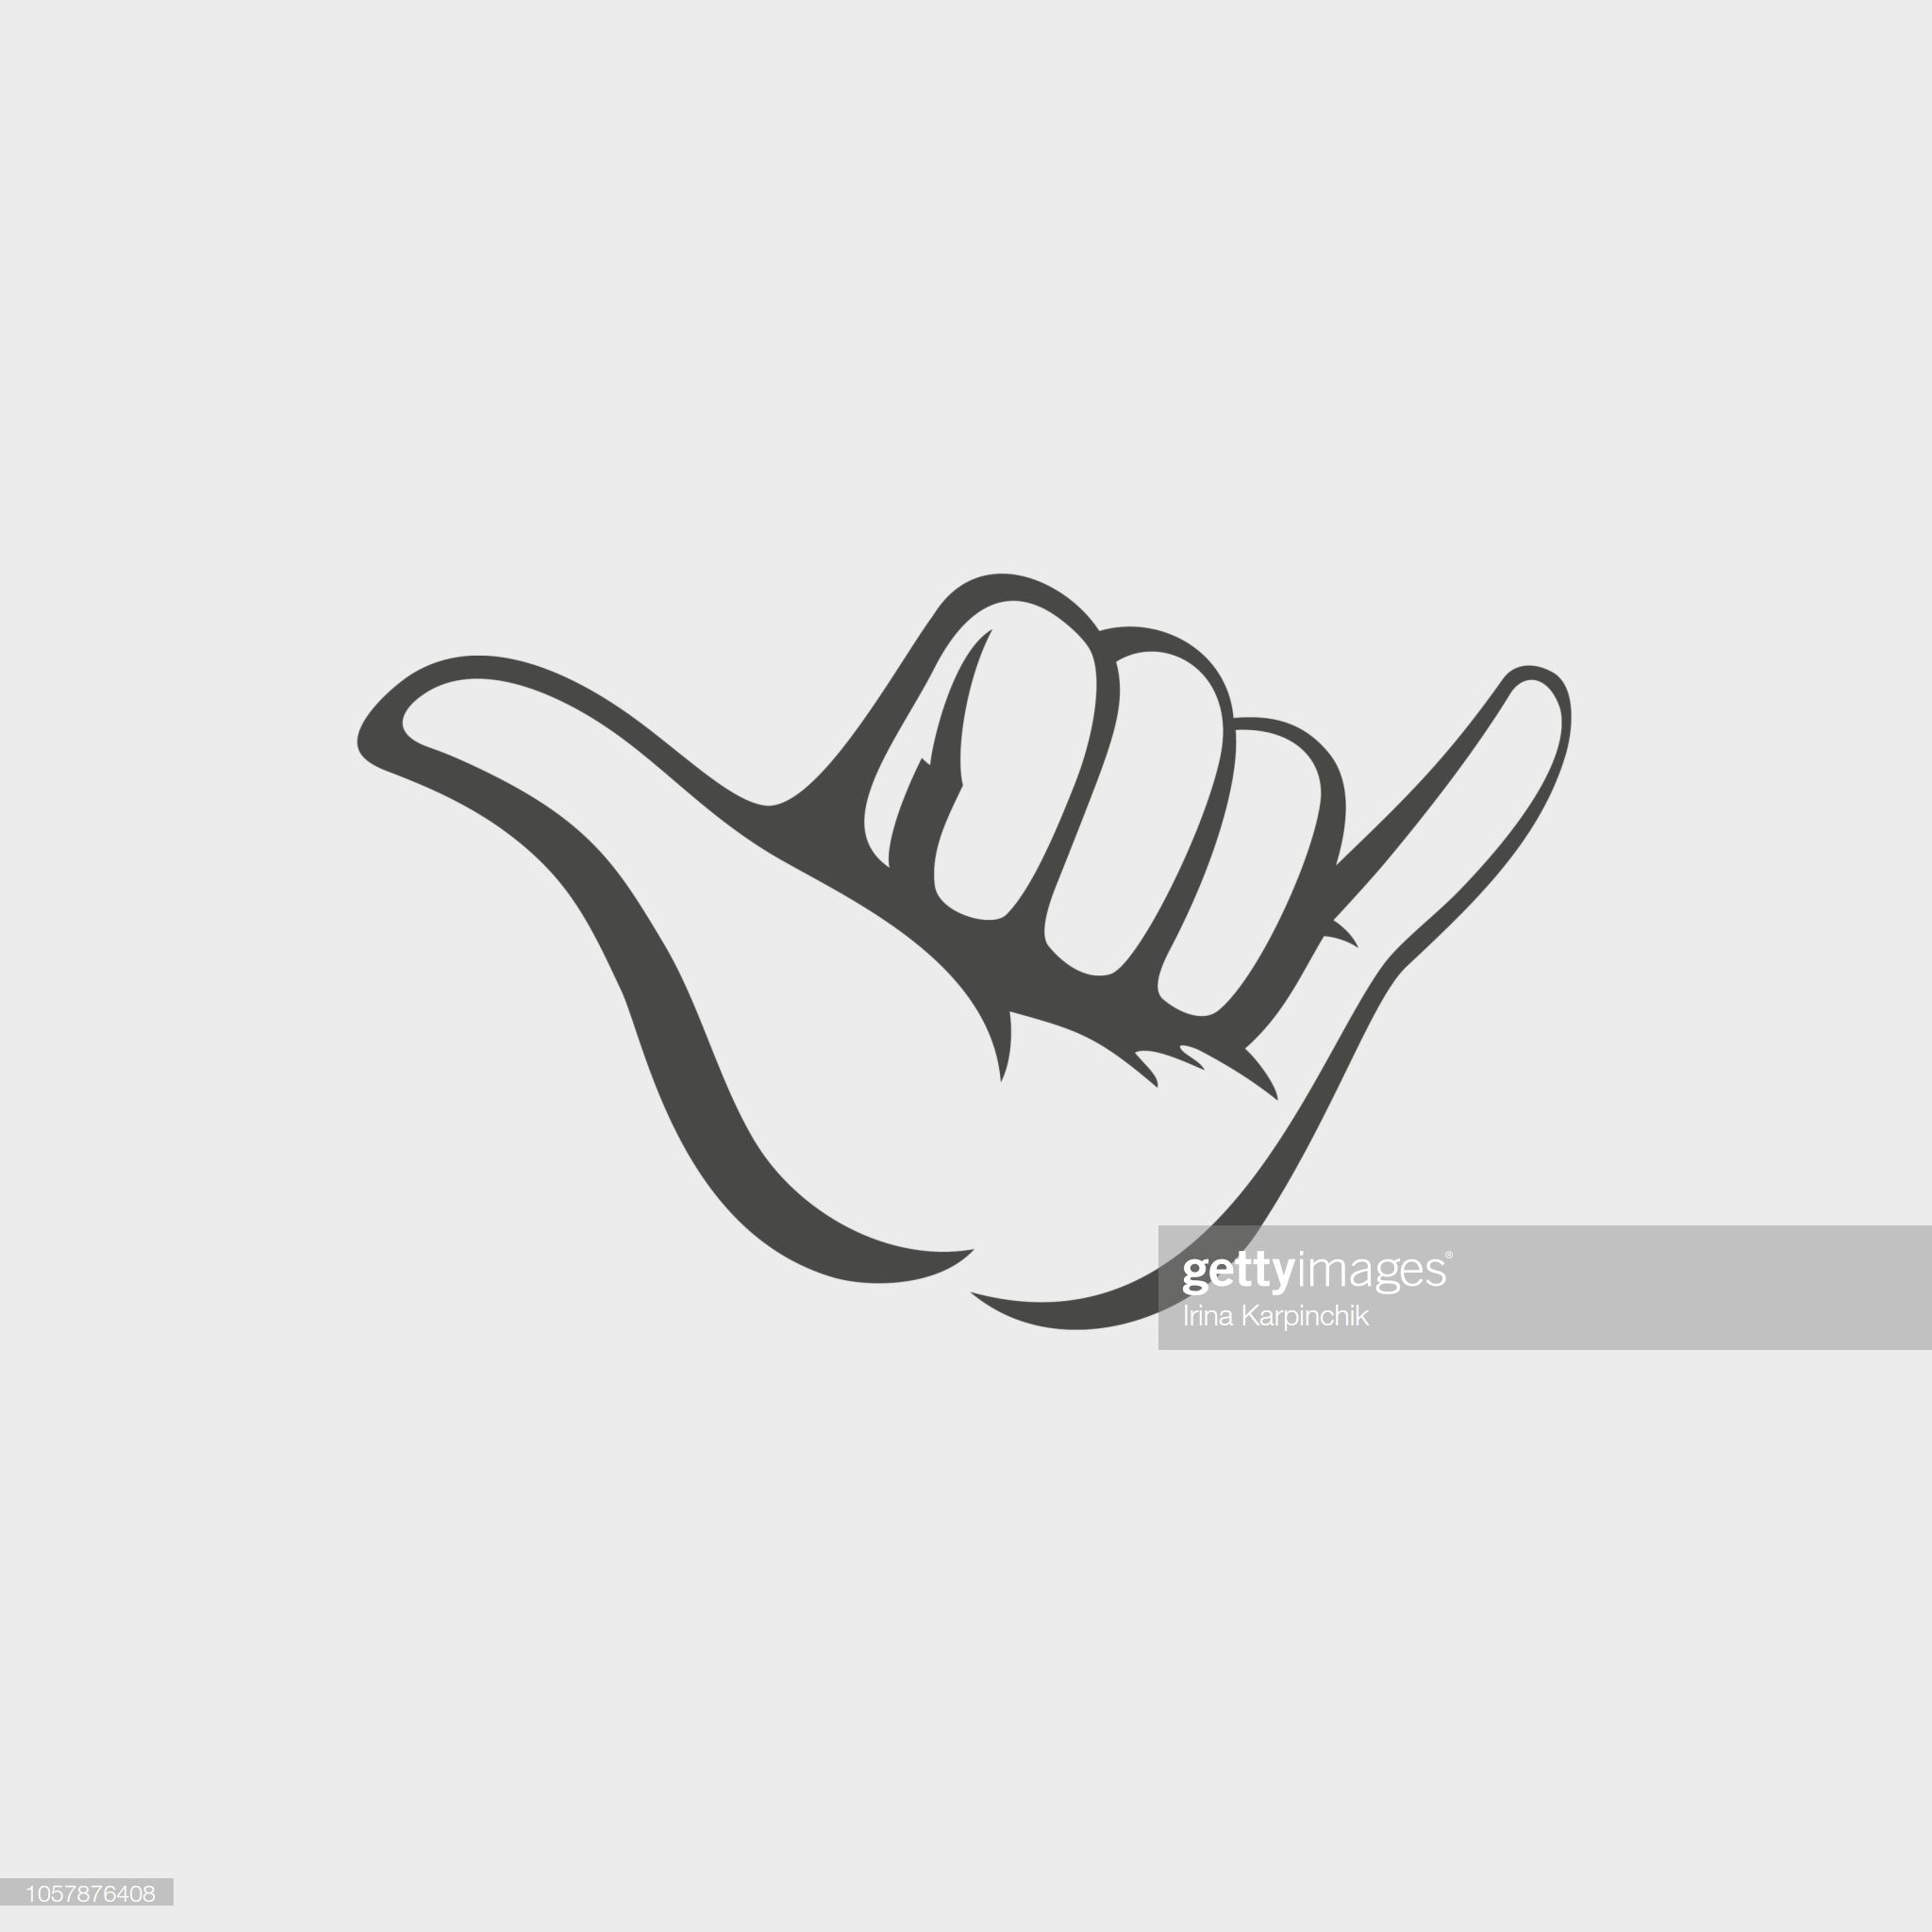 32+ Thumb and pinky hand gesture inspirations